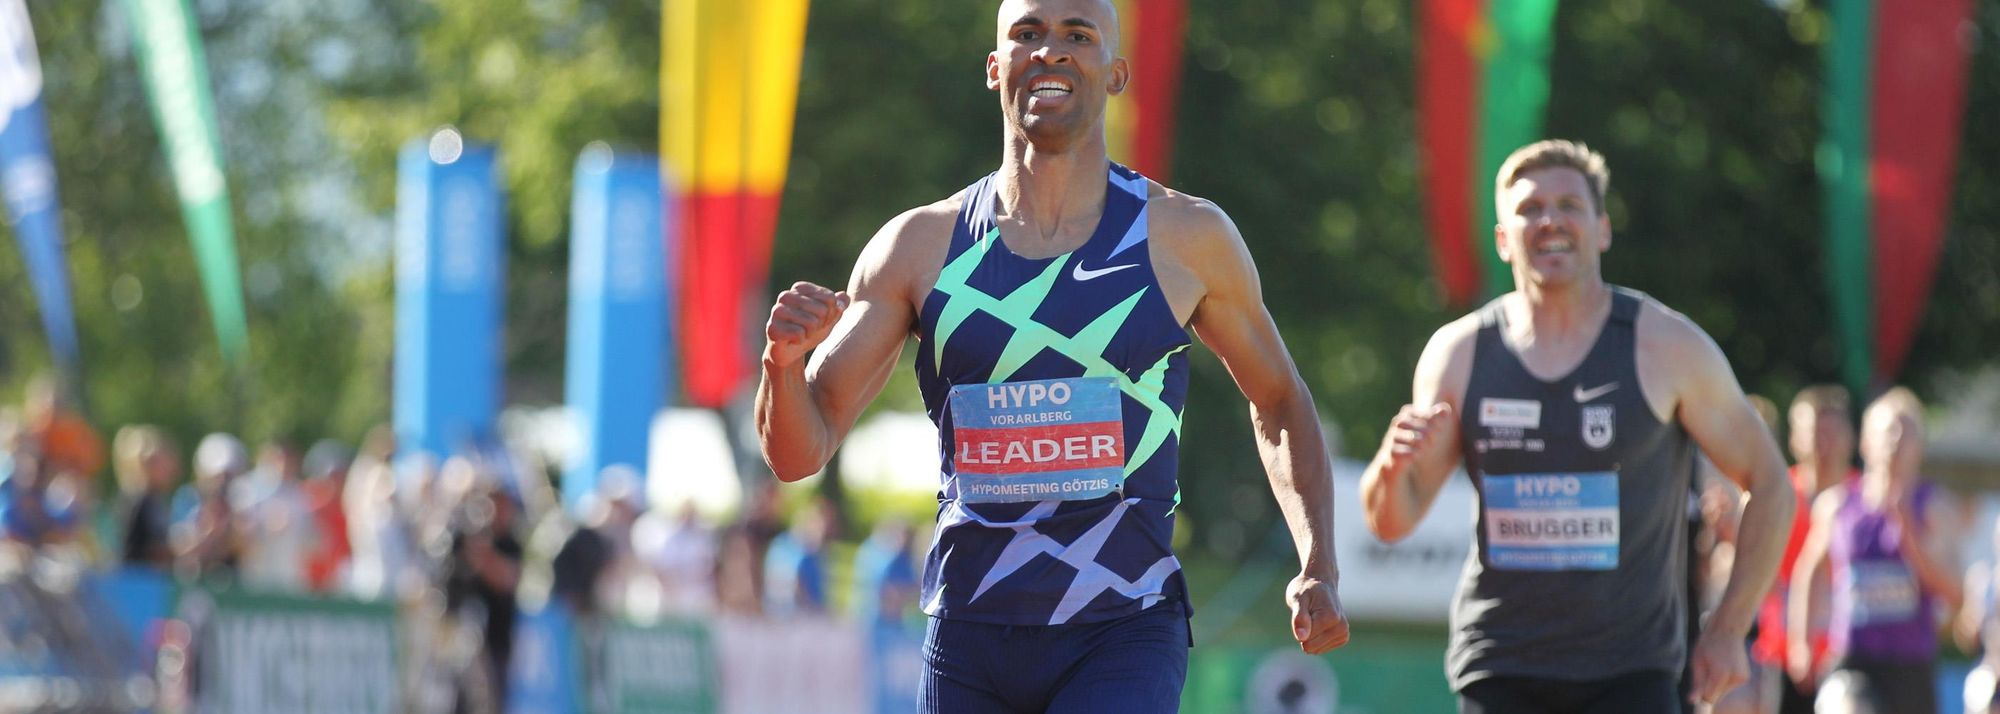 Damian Warner had gone into the Hypo Meeting aiming to become the event's first six-time winner but he ended up making history in other ways at the World Athletics Challenge – Combined Events meeting in Götzis on Sunday (30).